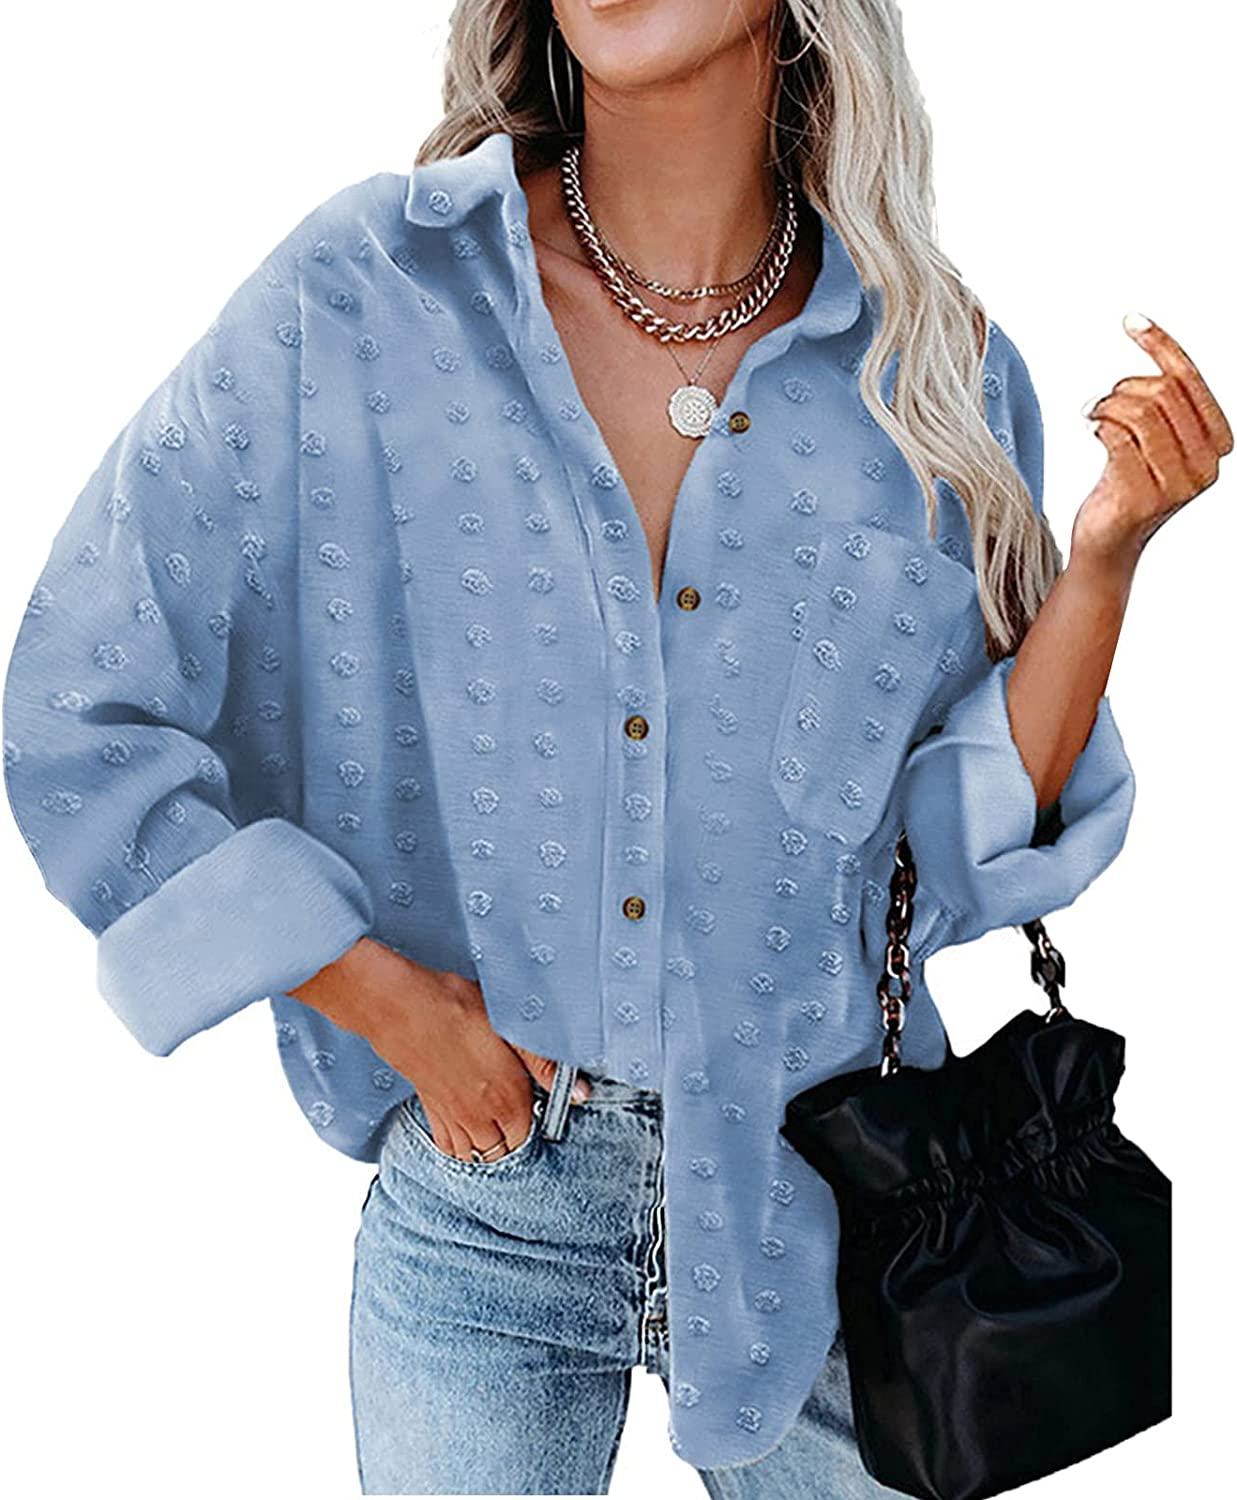 Womens Chiffon Button Down Shirts Breasted Long Sleeve Oversized Print Blouses Work Vacation Casual Tops Blue